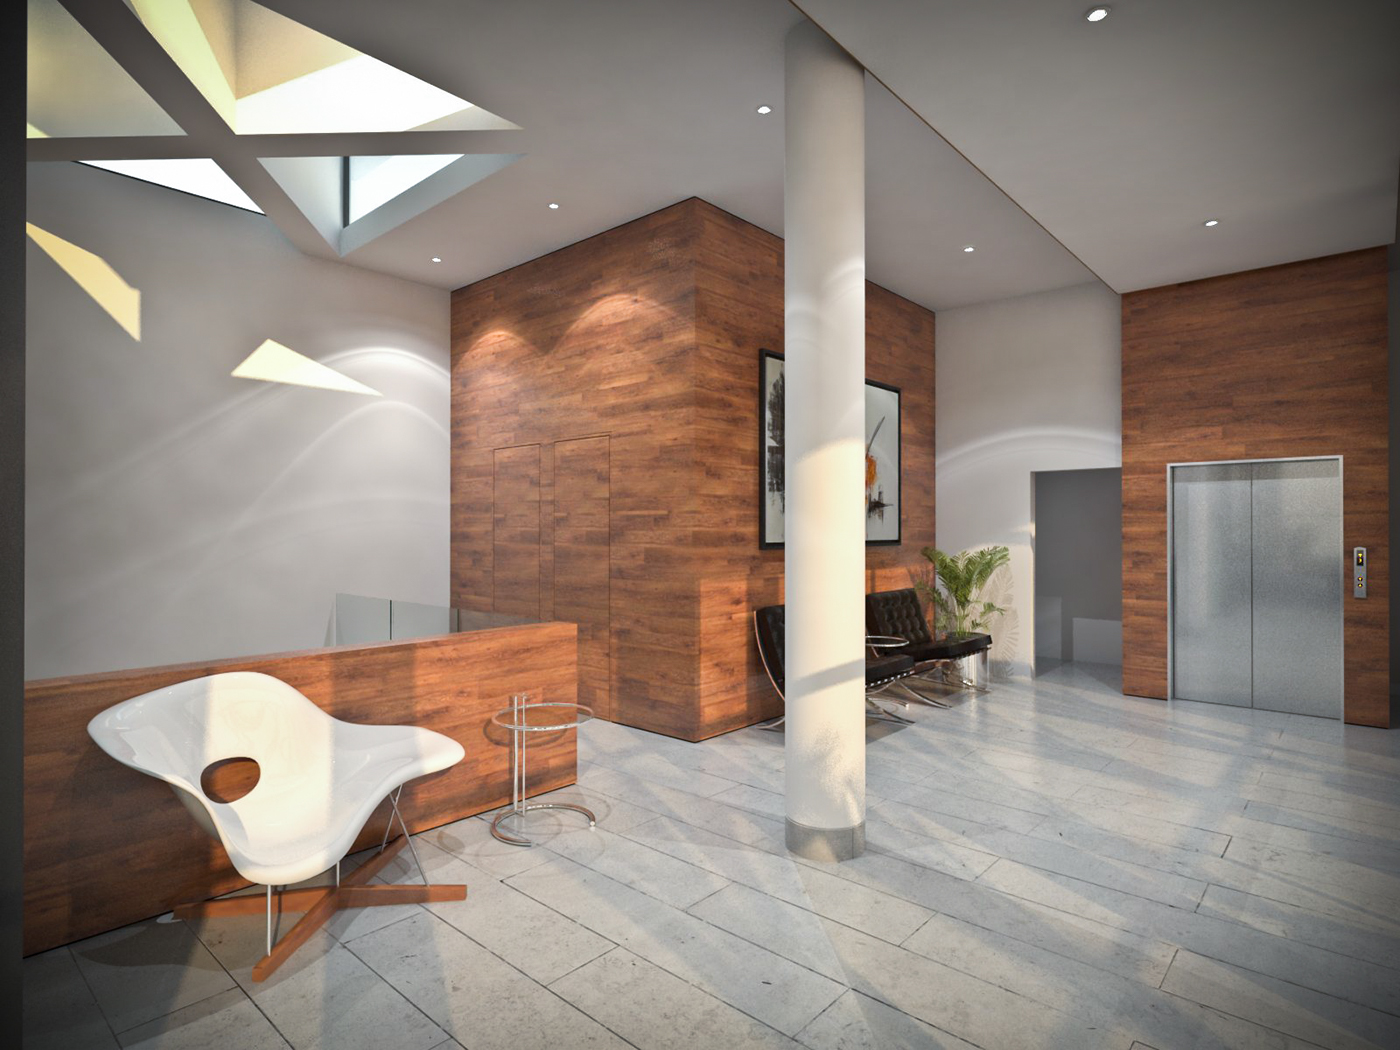 offices,lounge,meeting room,building,Headquarters